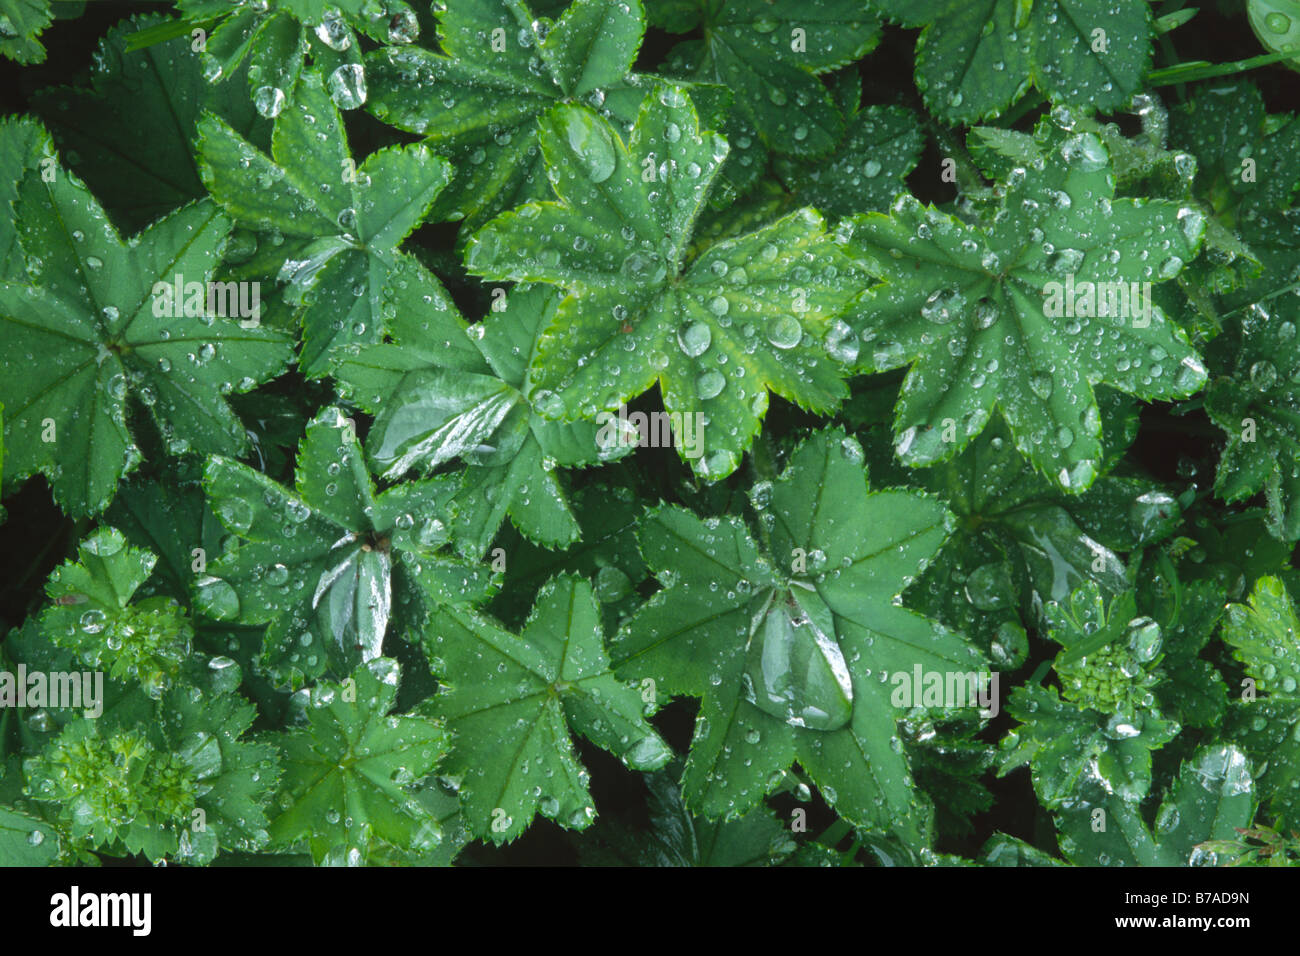 Waterdrops on Lady's Mantle (Alchemilla mollis), leaves after rain in North Tyrol, Austria, Europe - Stock Image